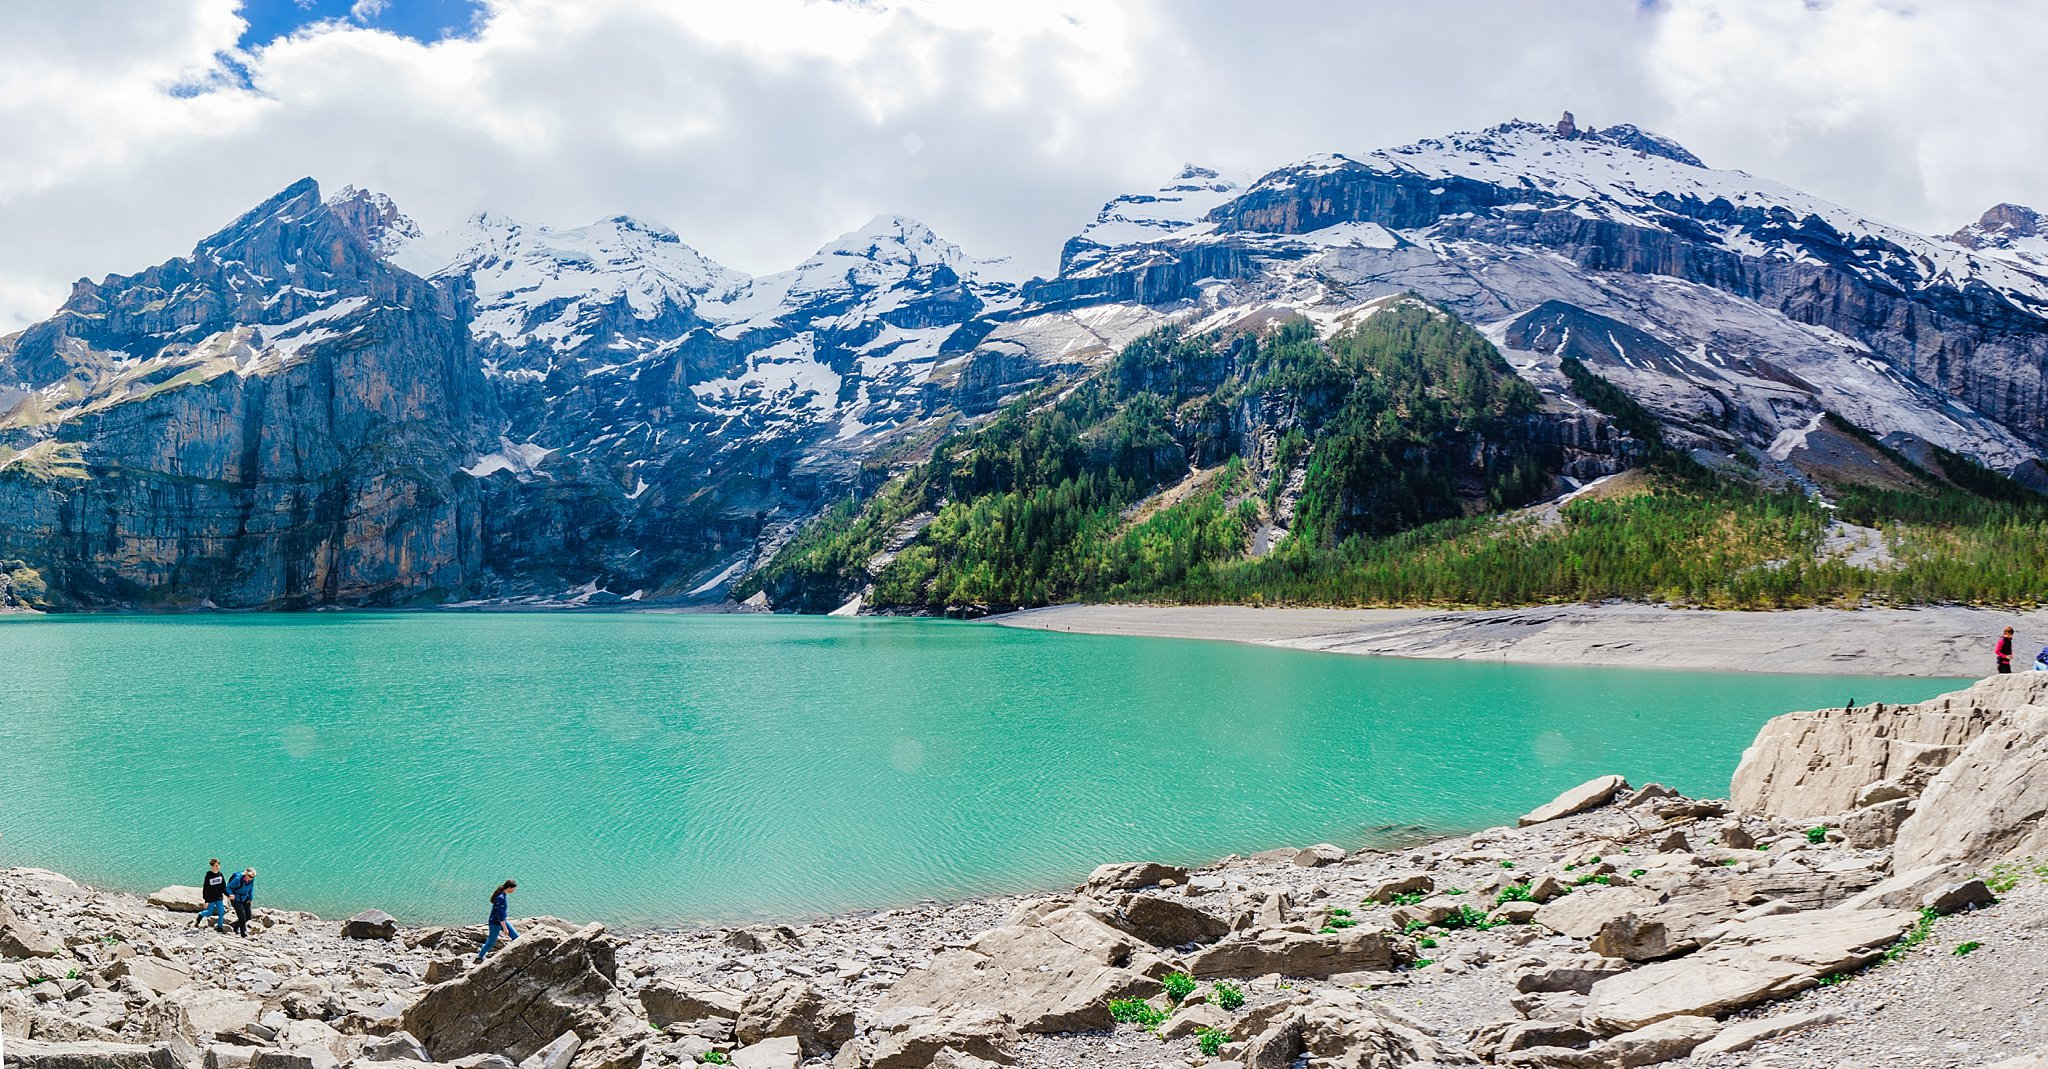 Oeschinensee Lake,adventure,anniversary trip,bern,europe,european vacation,hiking,switzerland,